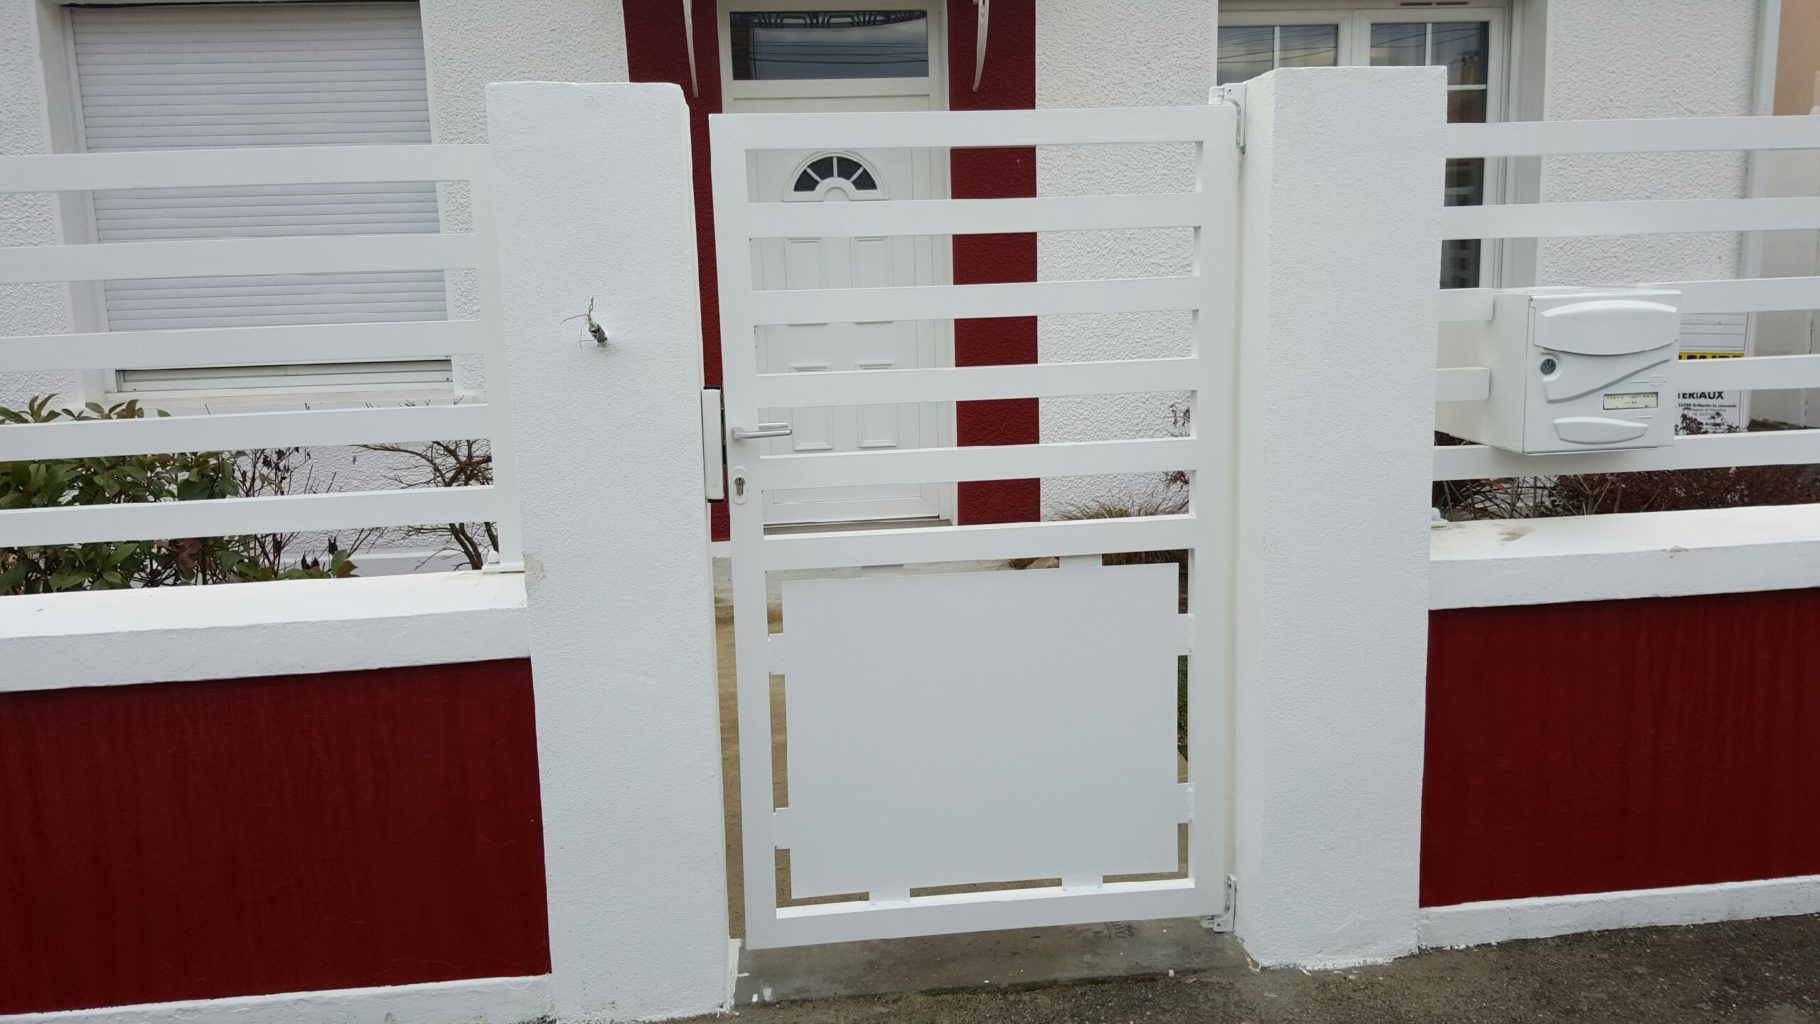 Portillon en aluminium sur mesure. Finition thermolaquage blanc.